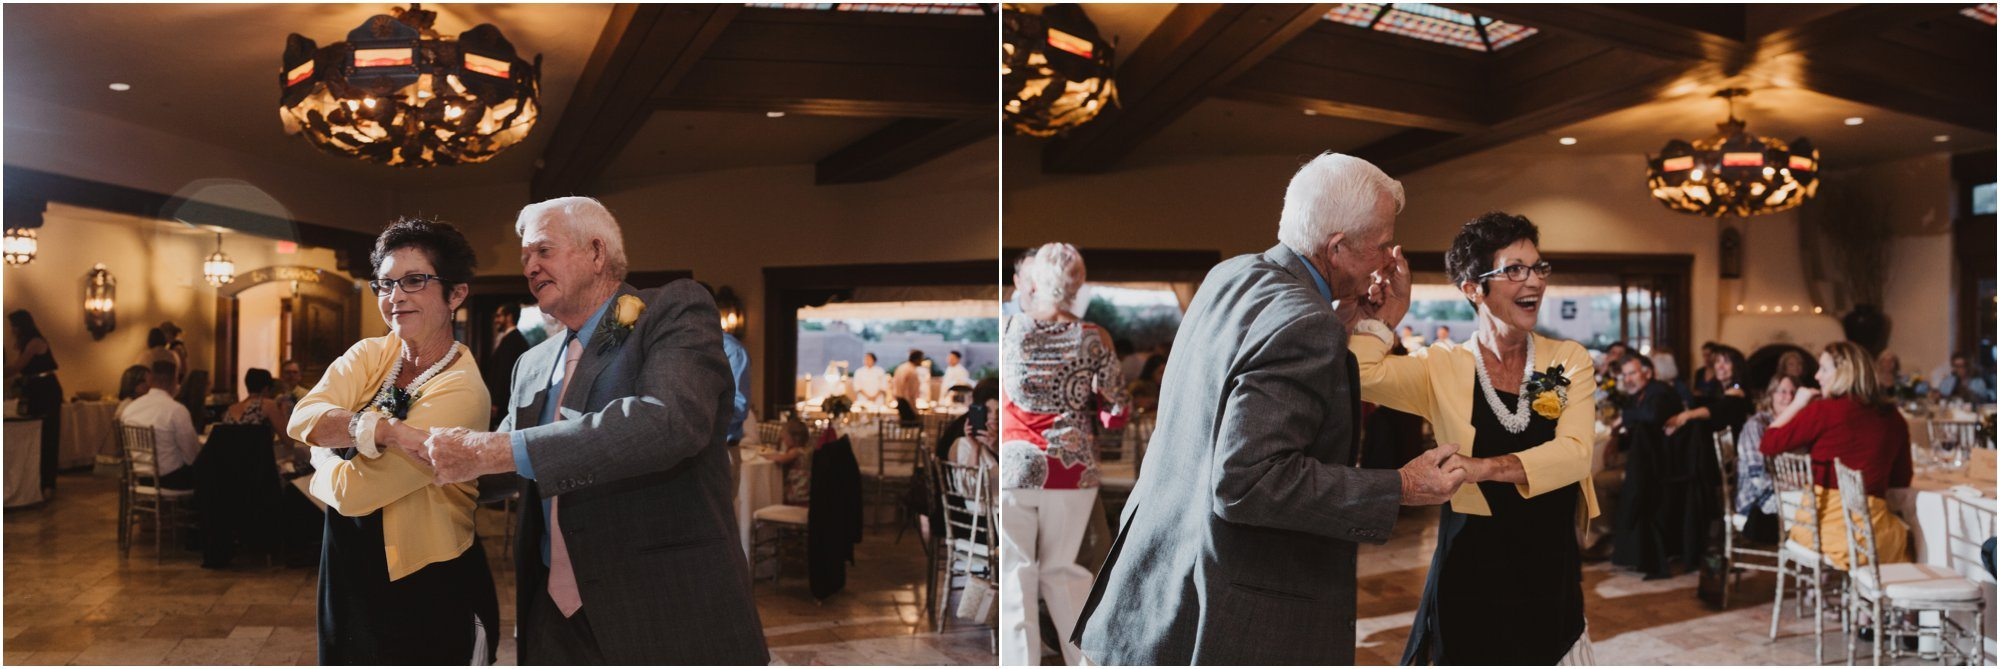 0068Top Santa Fe Wedding Photographer_Best Albuquerque Wedding Photographer_ Blue Rose Photography_ La Fonda Wedding Pictures